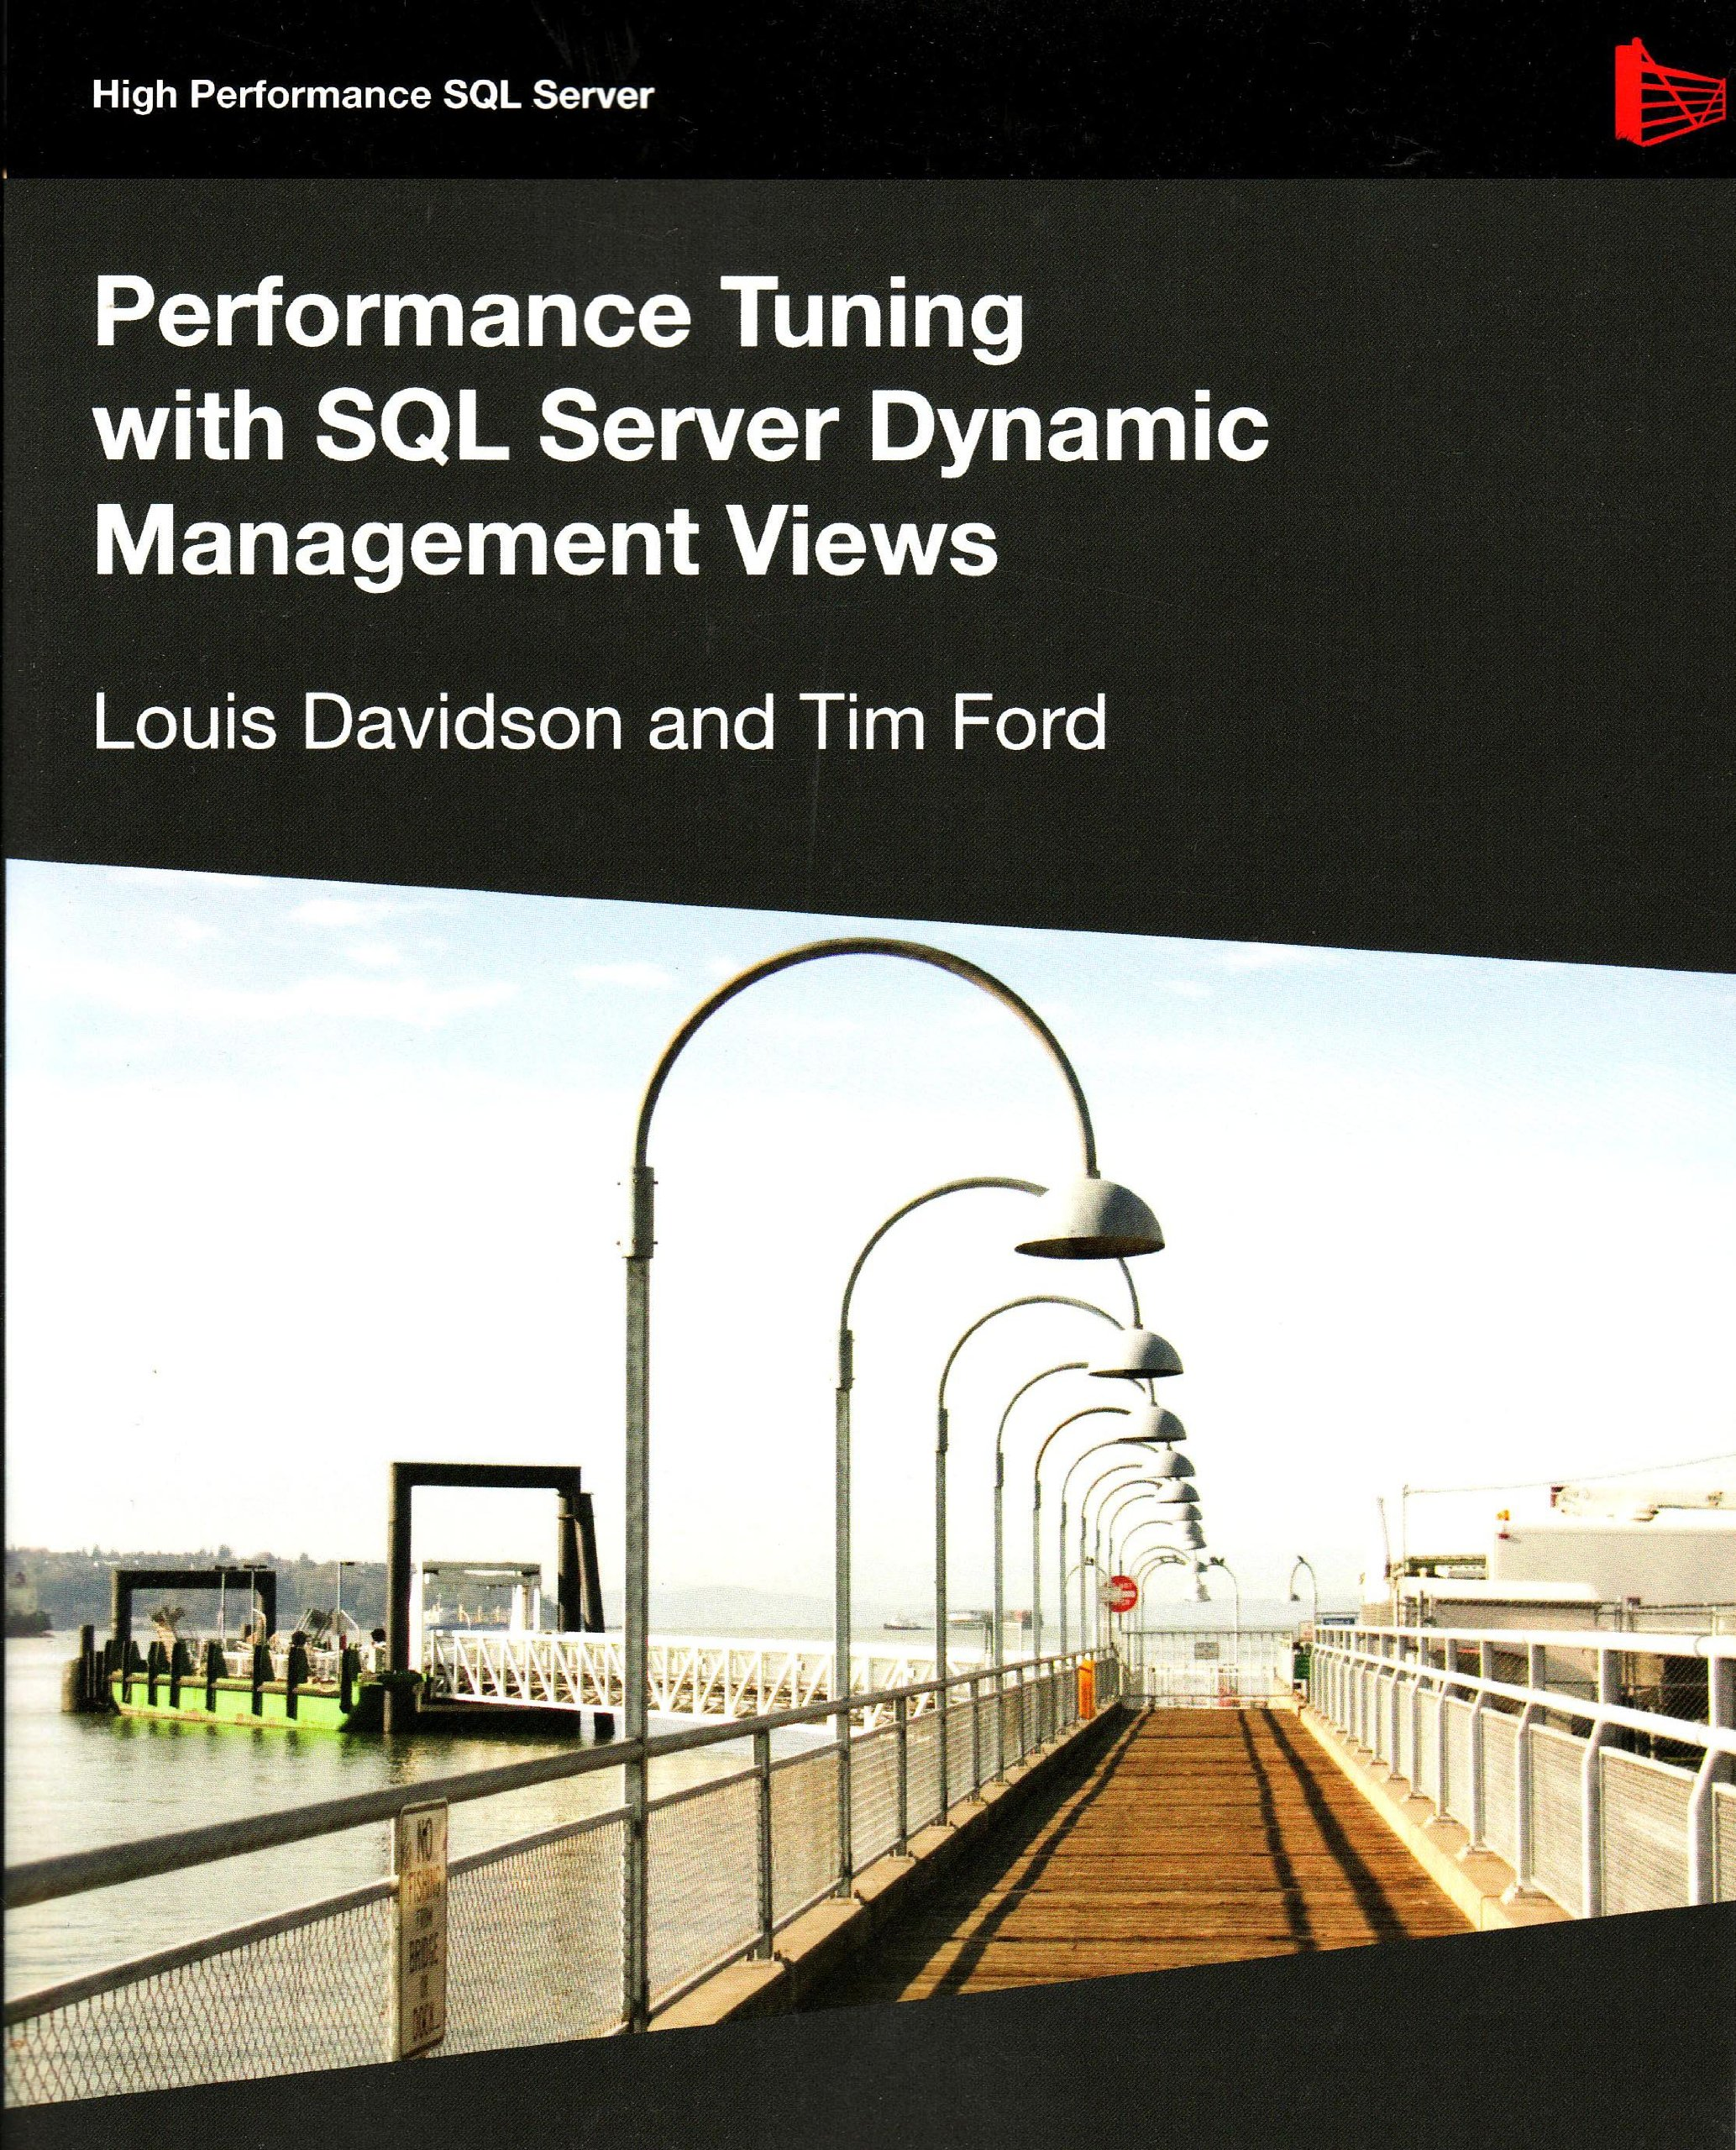 Performance Tuning with SQL Server Dynamic Management Views (High Performance SQL Server) por Louis Davidson